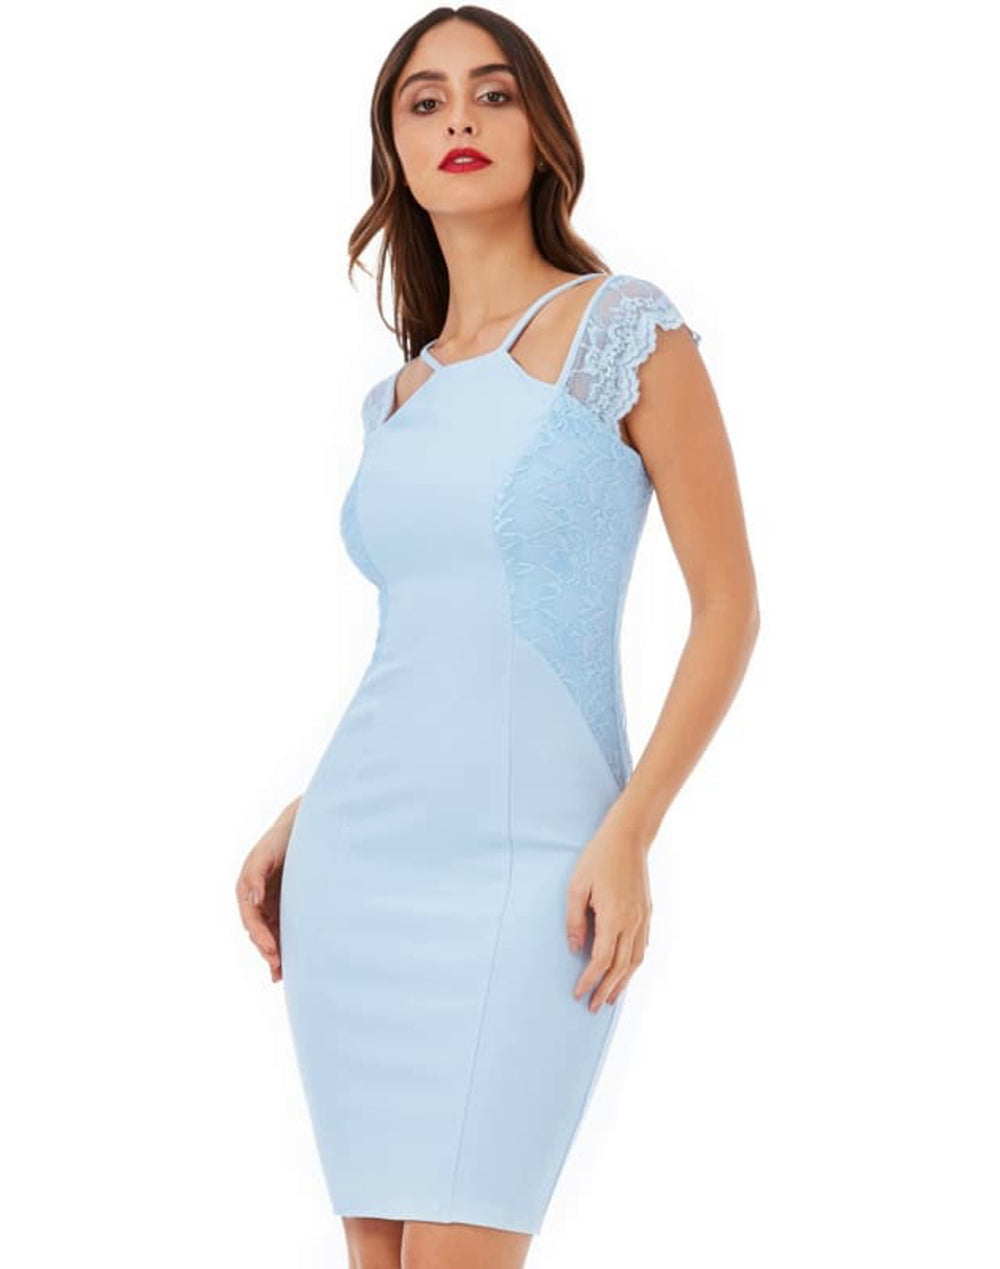 Sleeveless Midi Dress with Lace Detail - Dresses blue blue bodycon dresses blue dress blue dresses bodycon dress